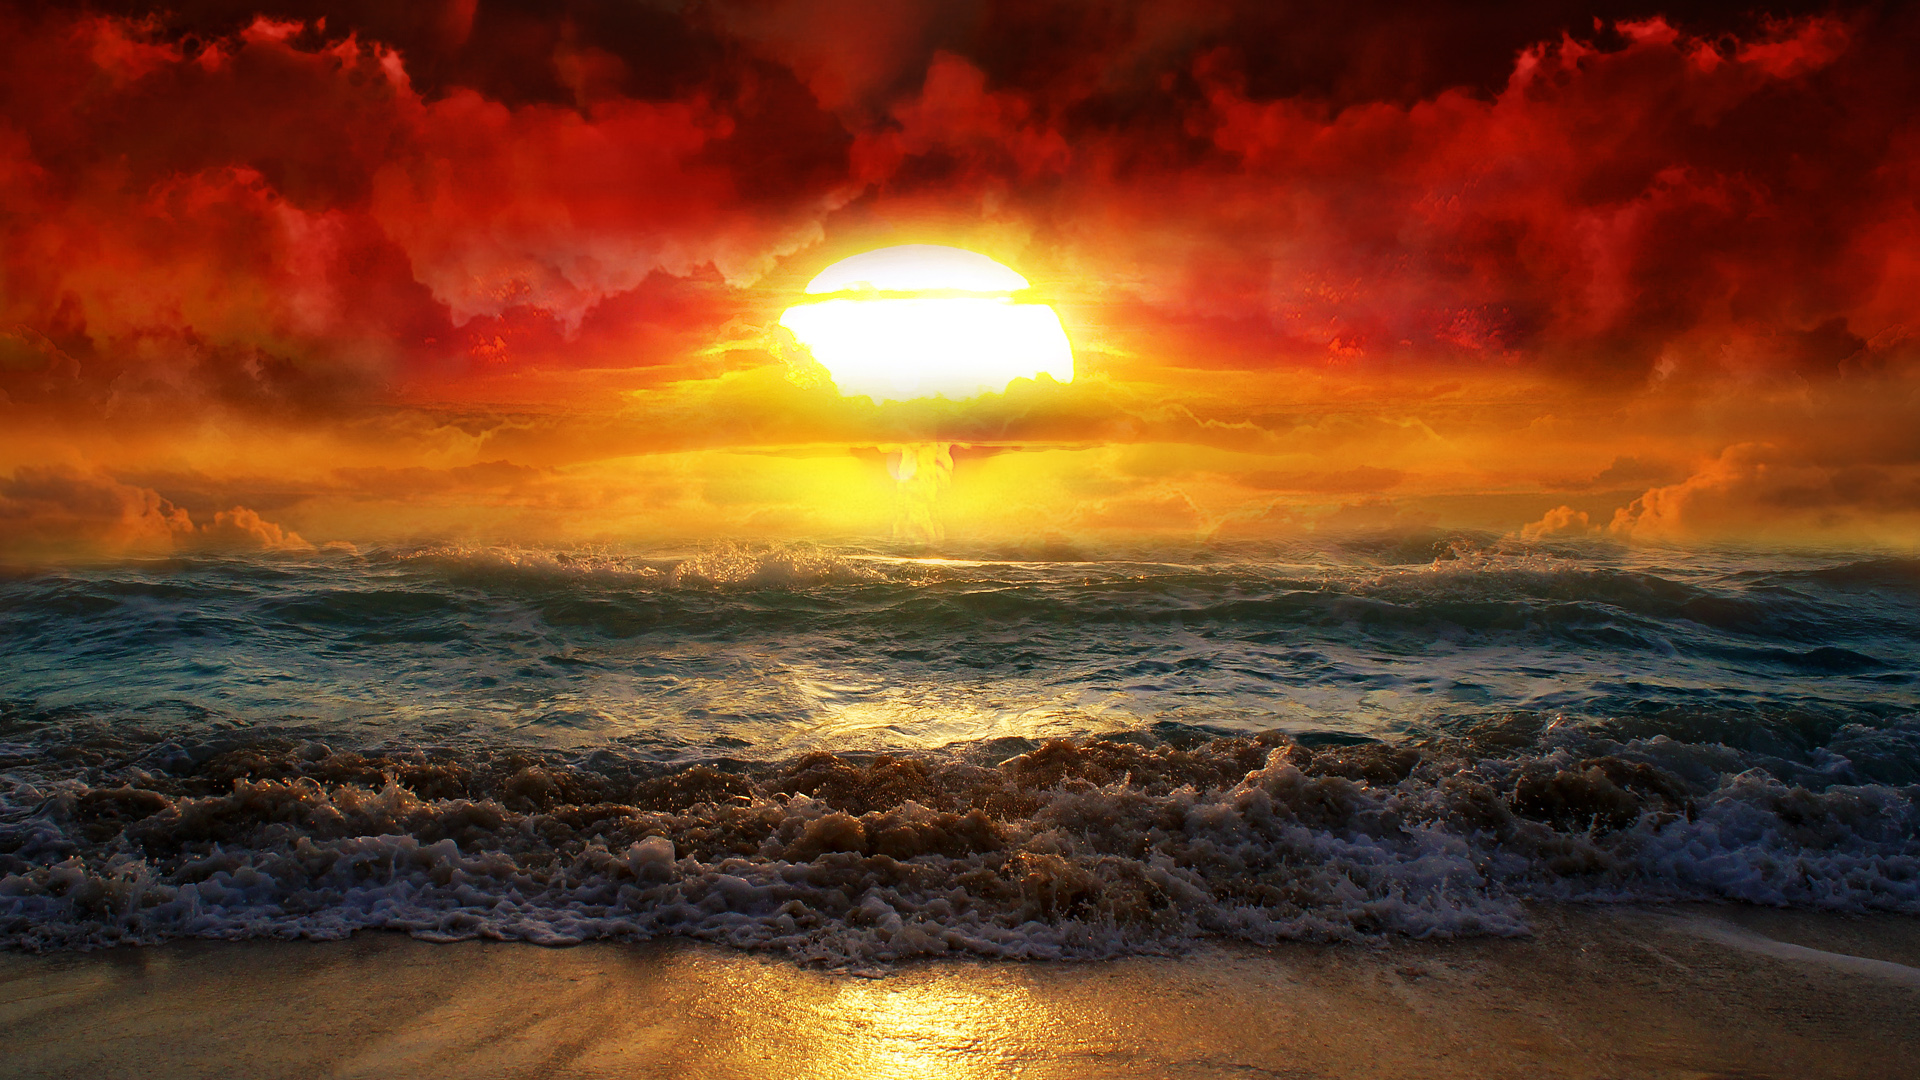 The Sunrise Wallpapers HD Wallpapers 1920x1080